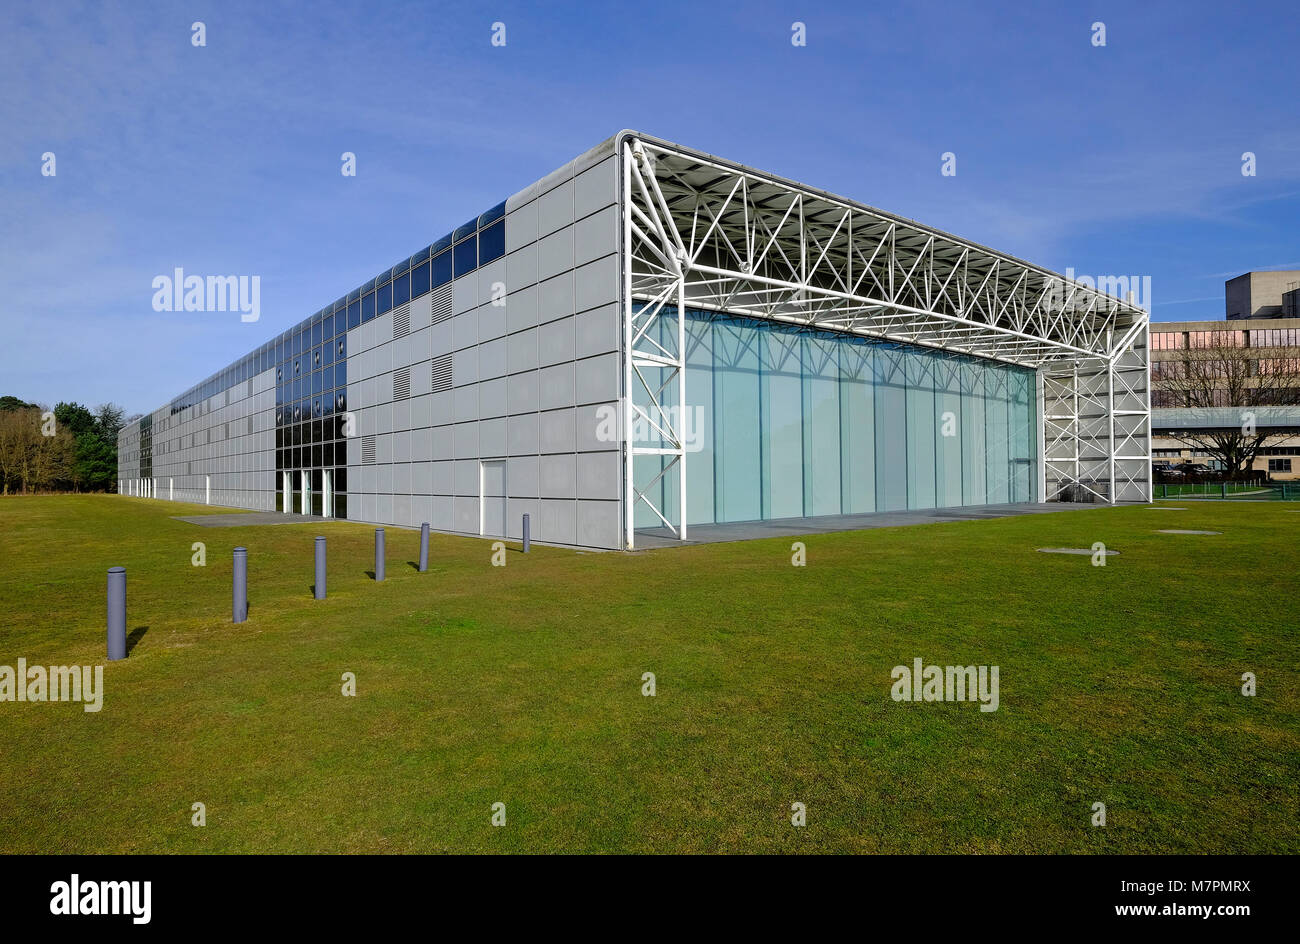 the sainsbury centre for visual arts, uea, norwich, norfolk, england - Stock Image